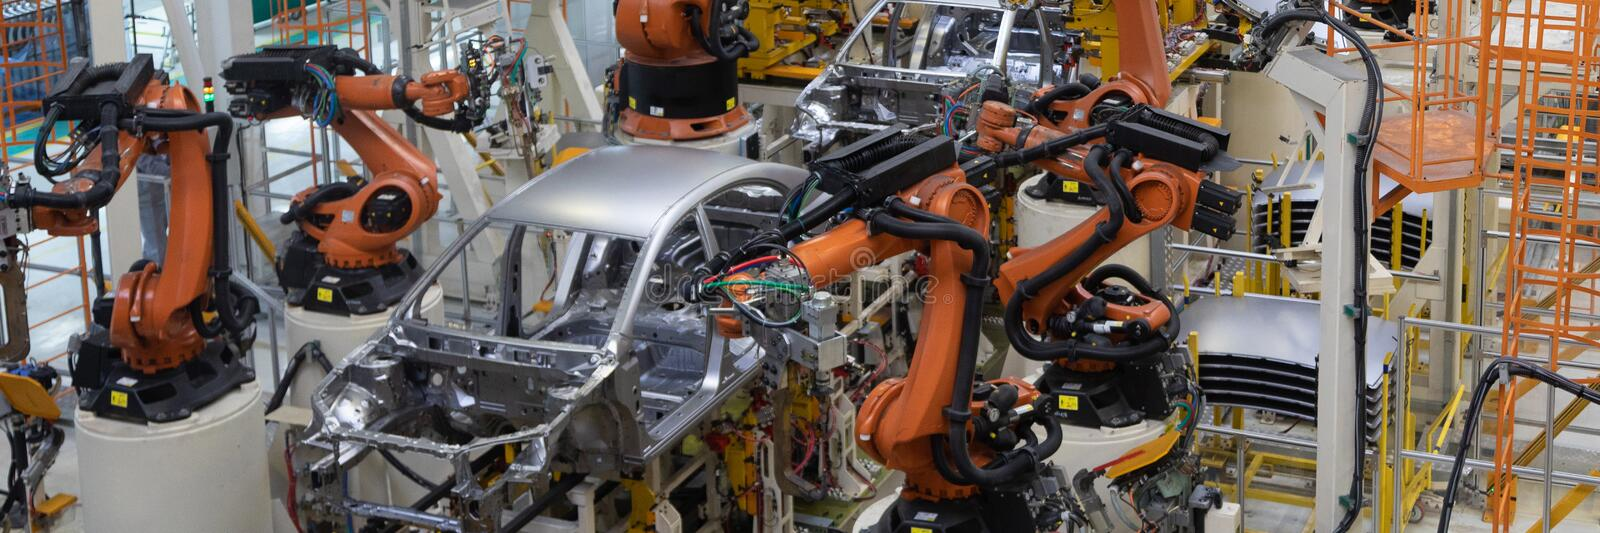 Welding of car body. Automotive production line. long format. Wide frame royalty free stock image